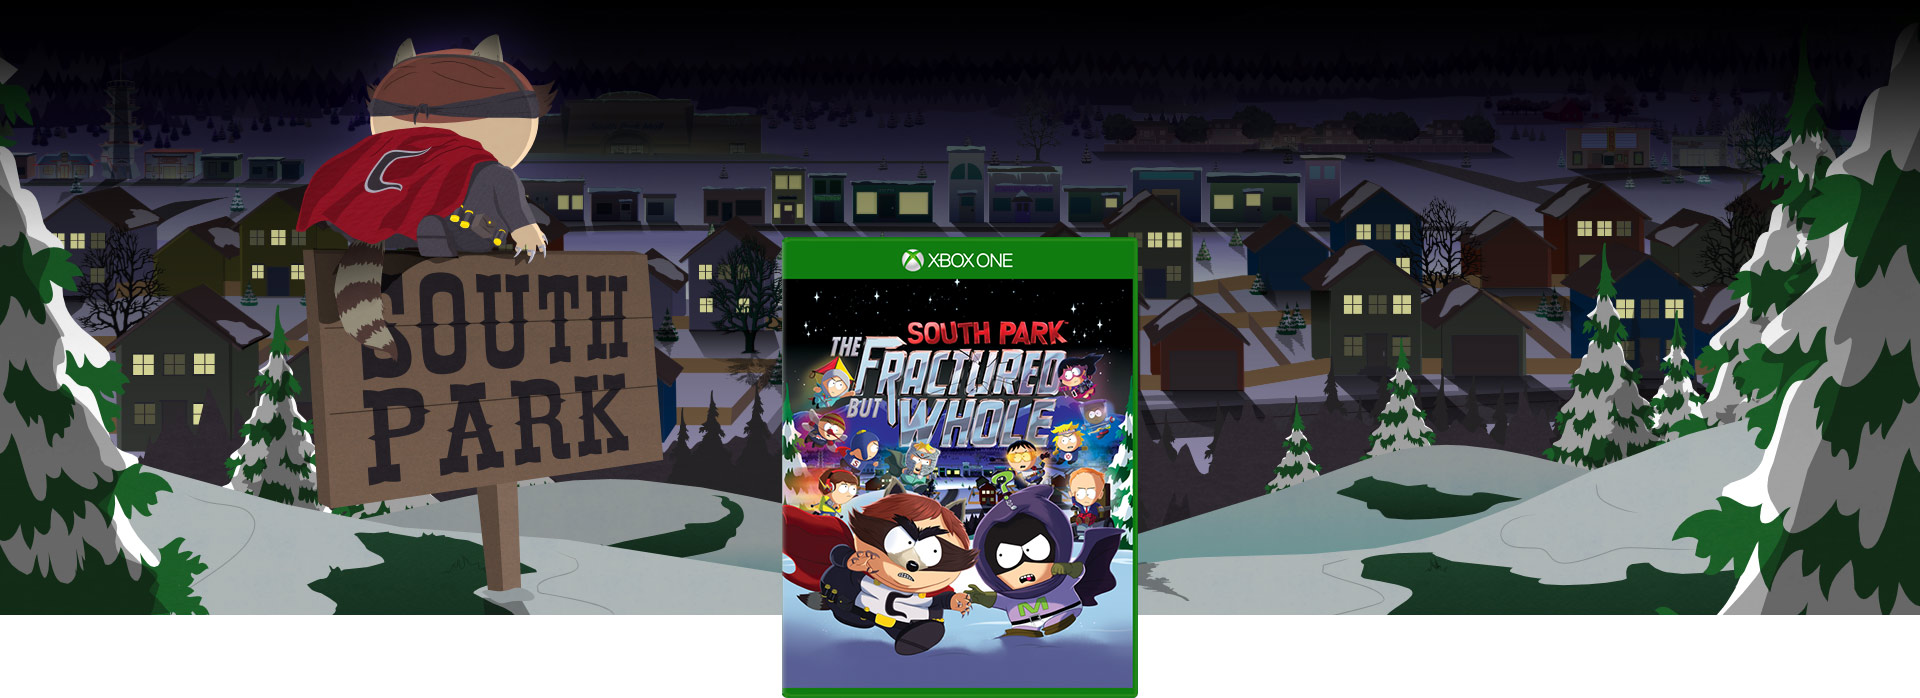 South Park Fractured But Whole 包裝圖